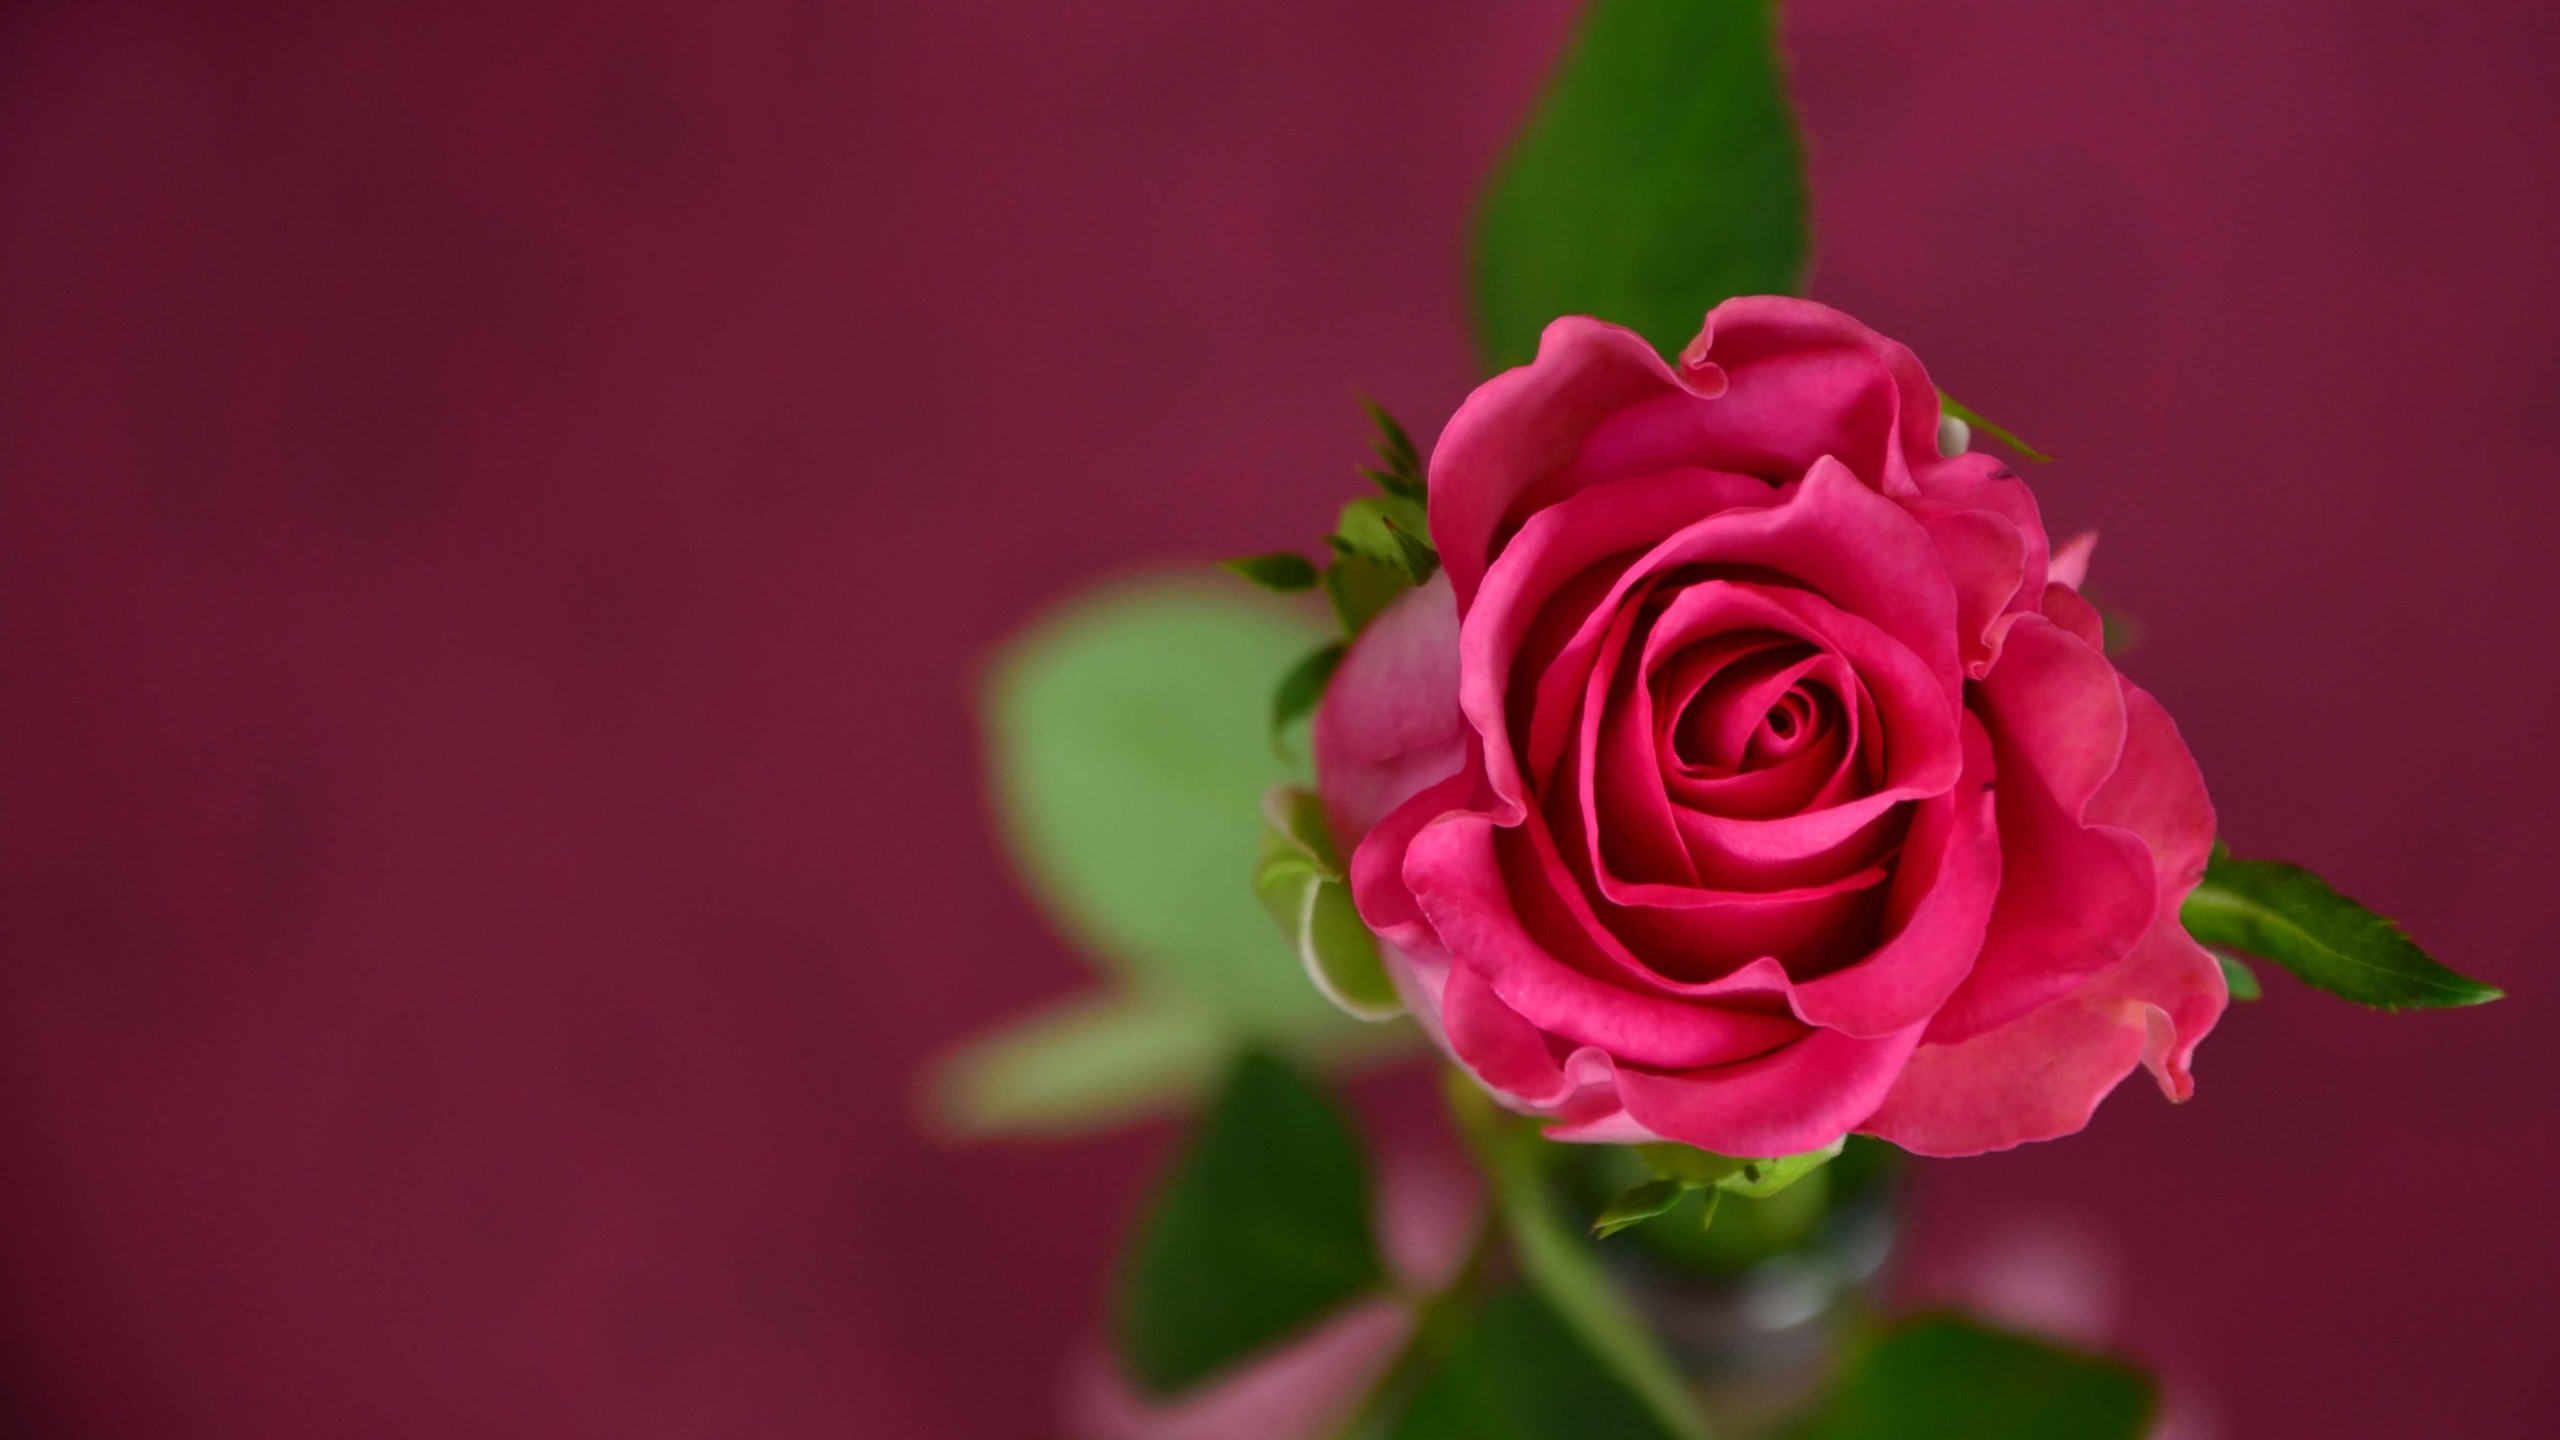 Single Pink Rose Wallpaper for Desktop 2560x1440